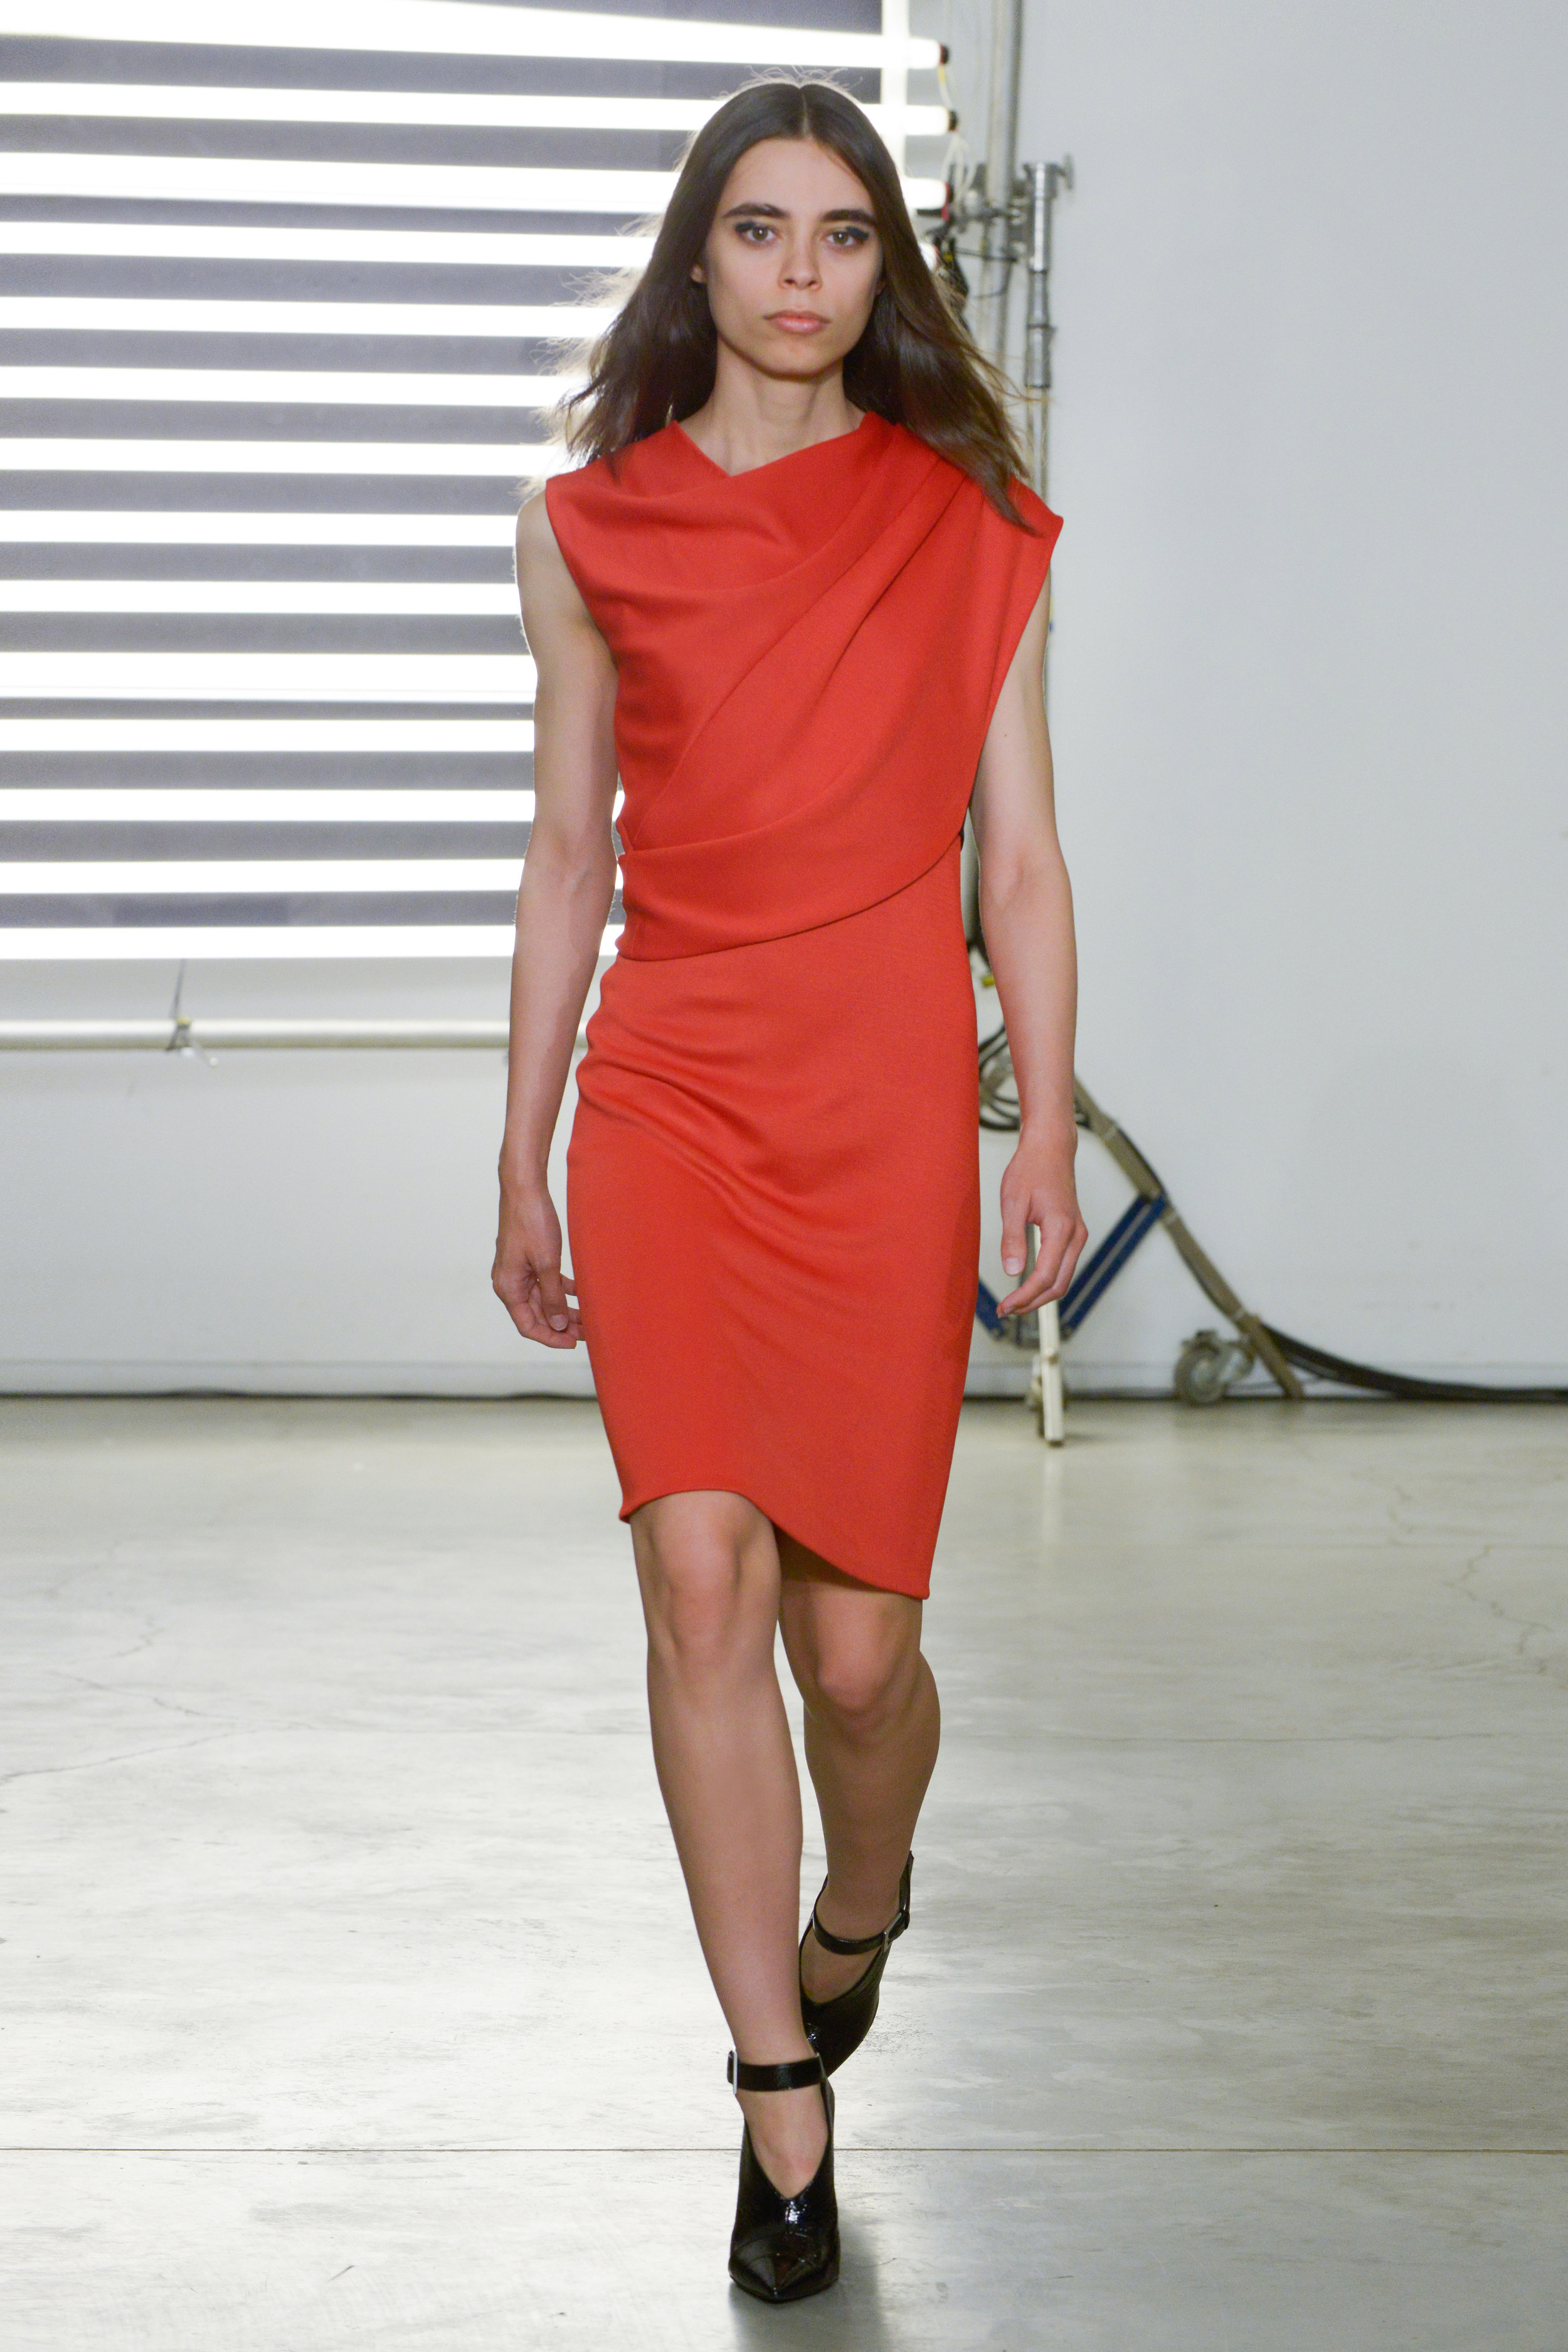 Look 10 Red jersey layered dress.